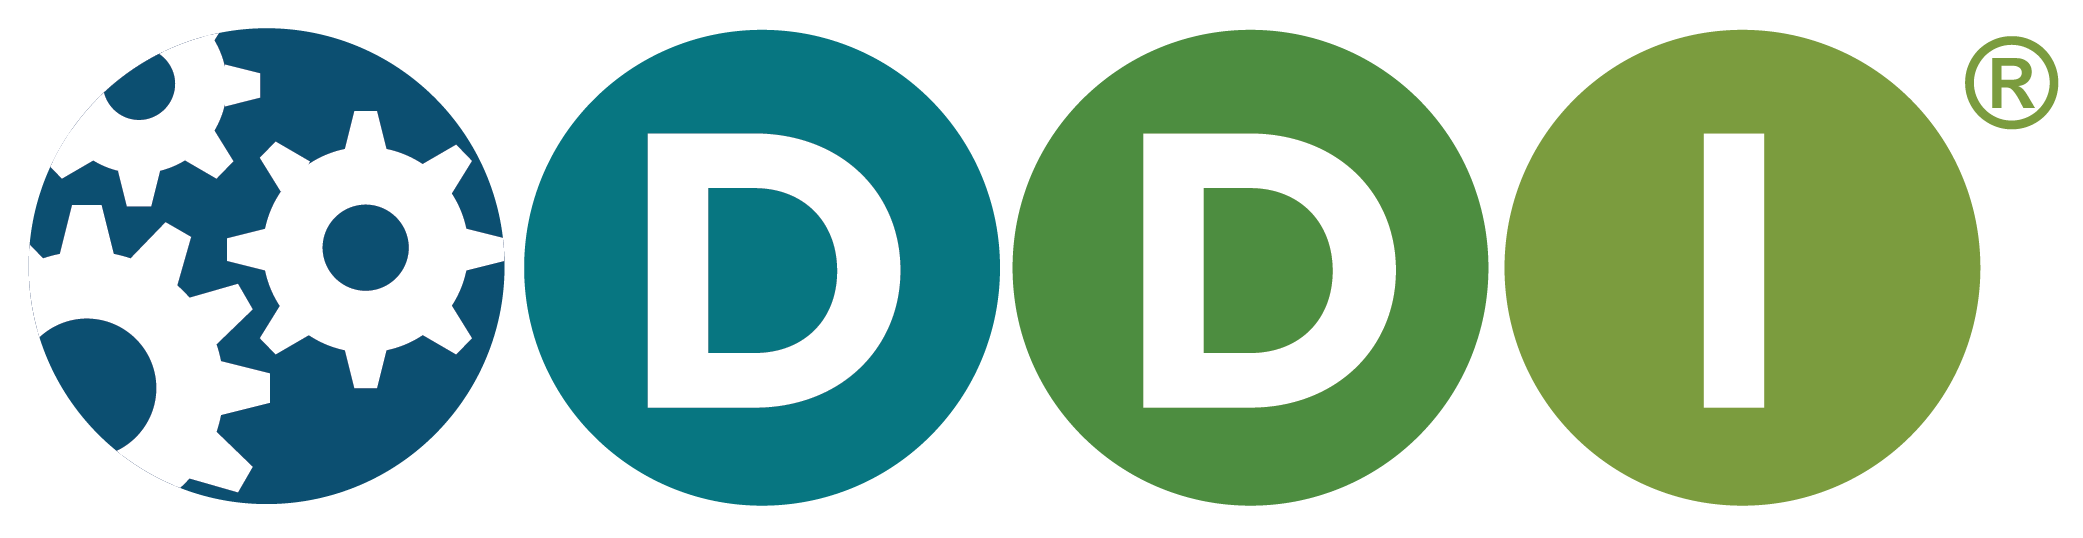 DDI logo - white gears in blue background with teal, green, and lime green circles each with a white letter of DDI in them